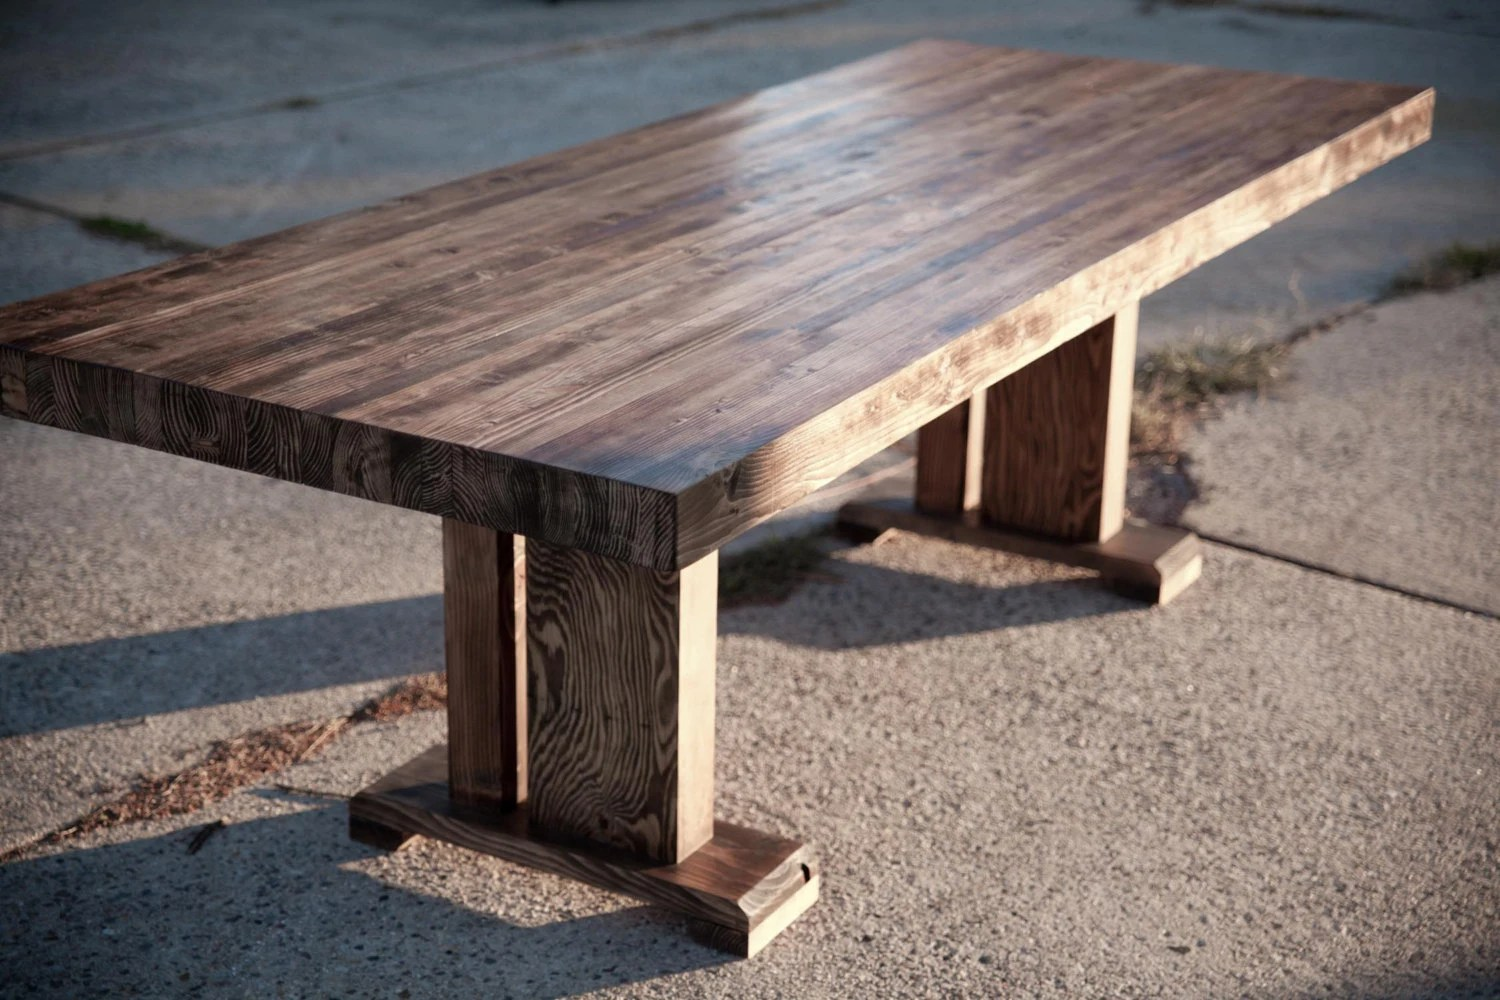 butcher block butcher block kitchen table Butcher Block Table Solid Wood Farmhouse Dining Table Conference Table Trestle Table Base Pedestal Table